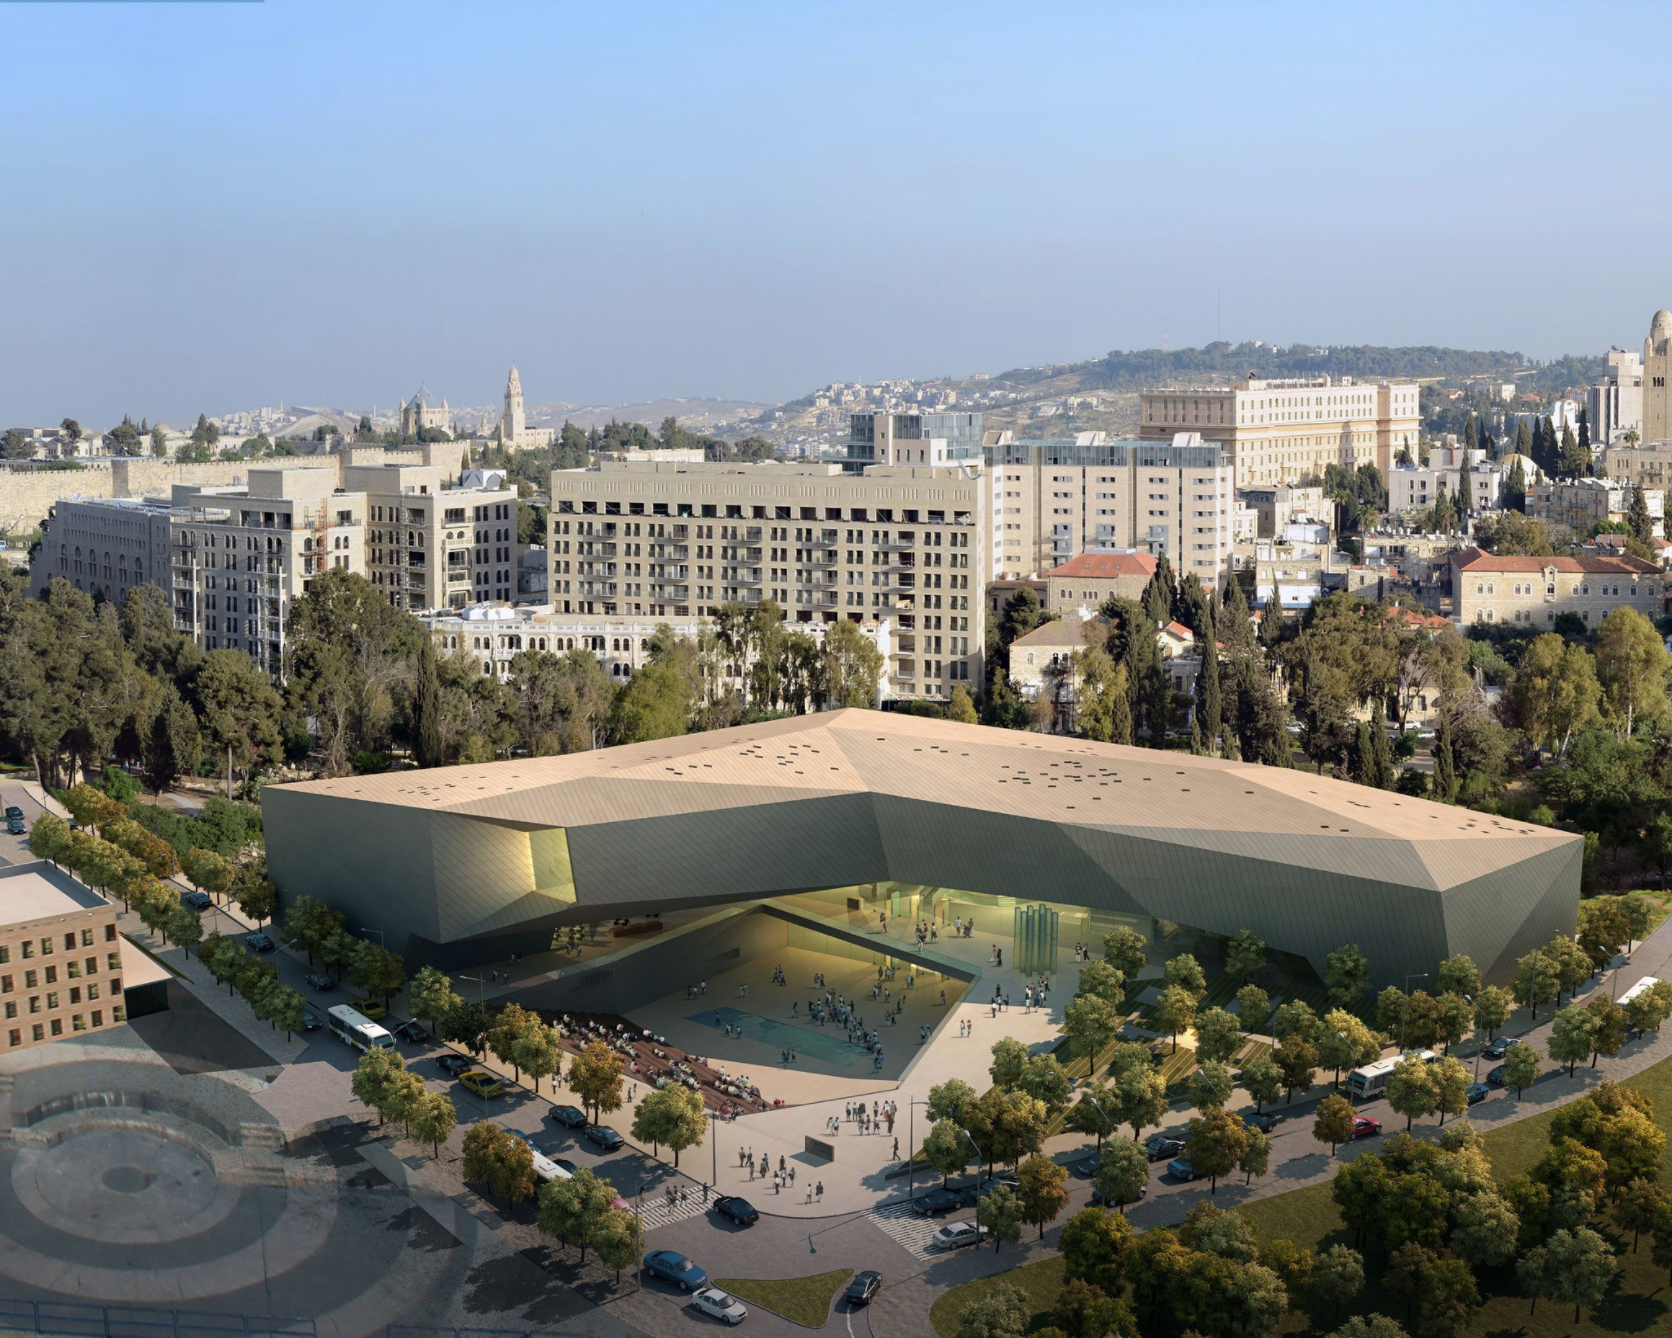 An artist's rendering of the new center of the Museum of Tolerance that will be built in Jerusalem. Credit: Simon Wiesenthal Center